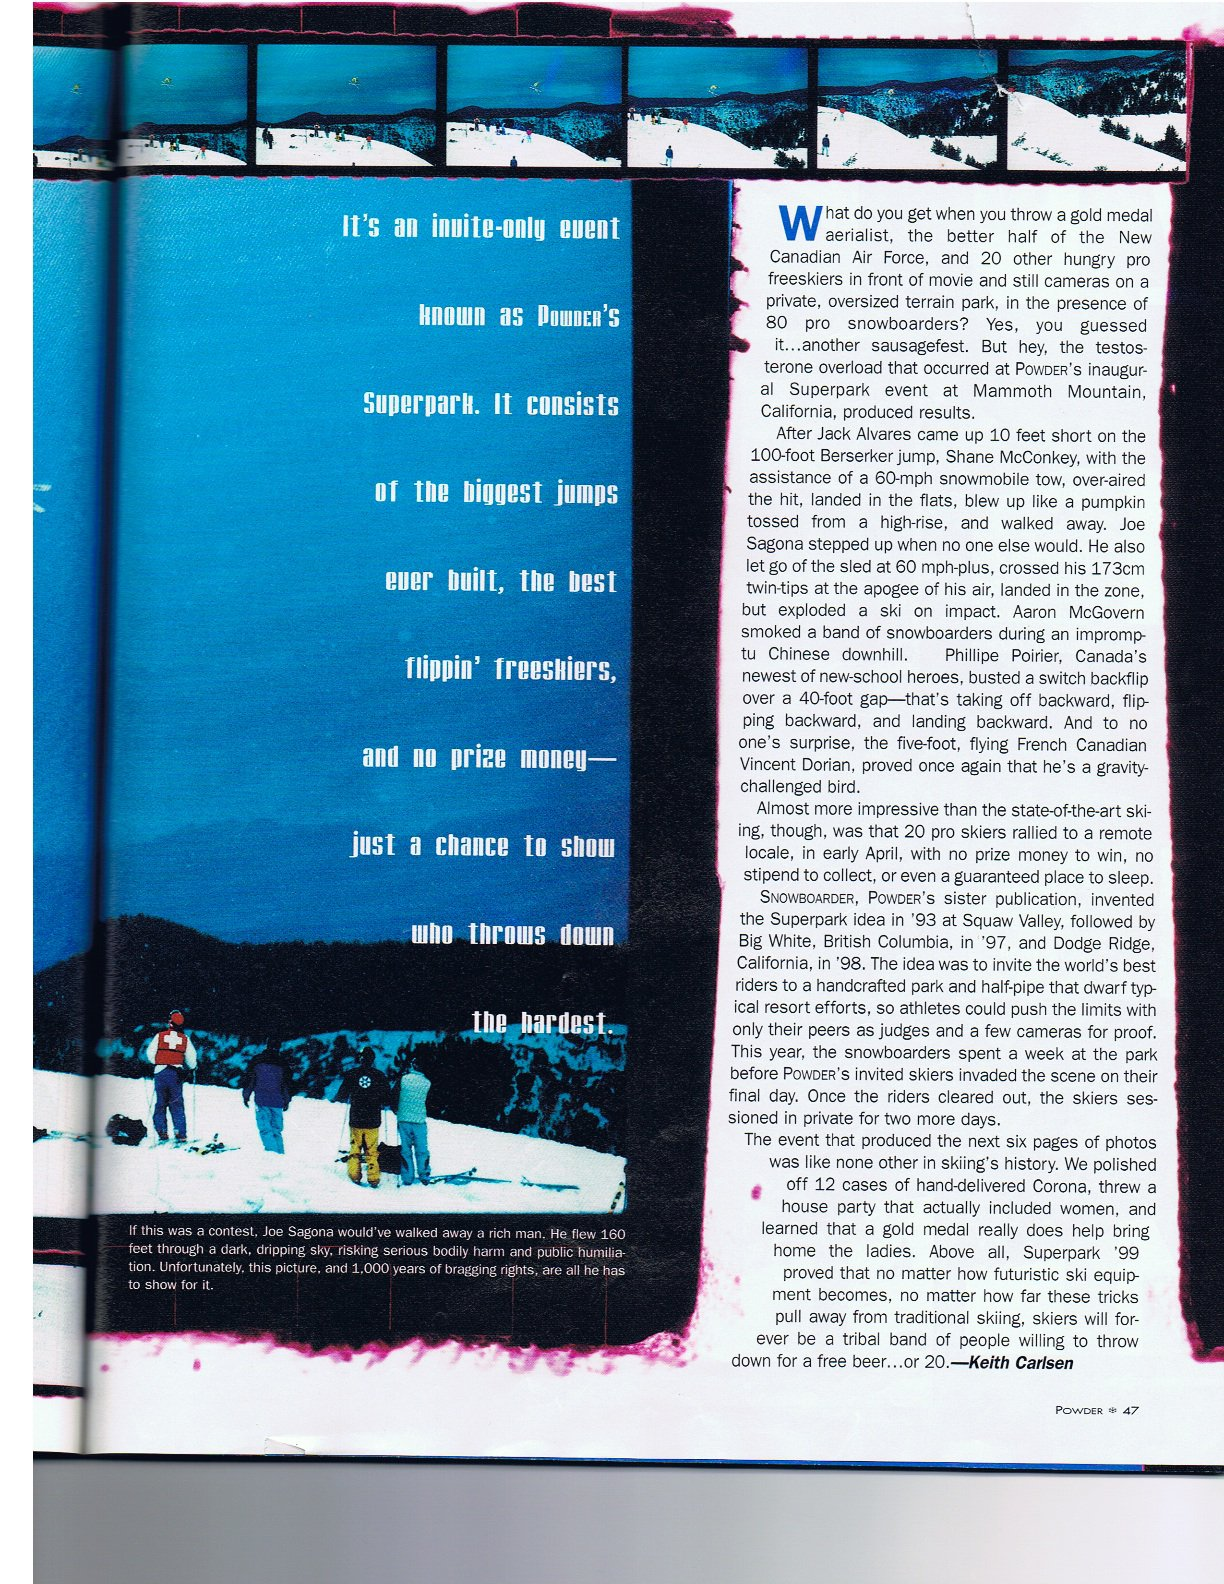 Superpark 1 article - page 2